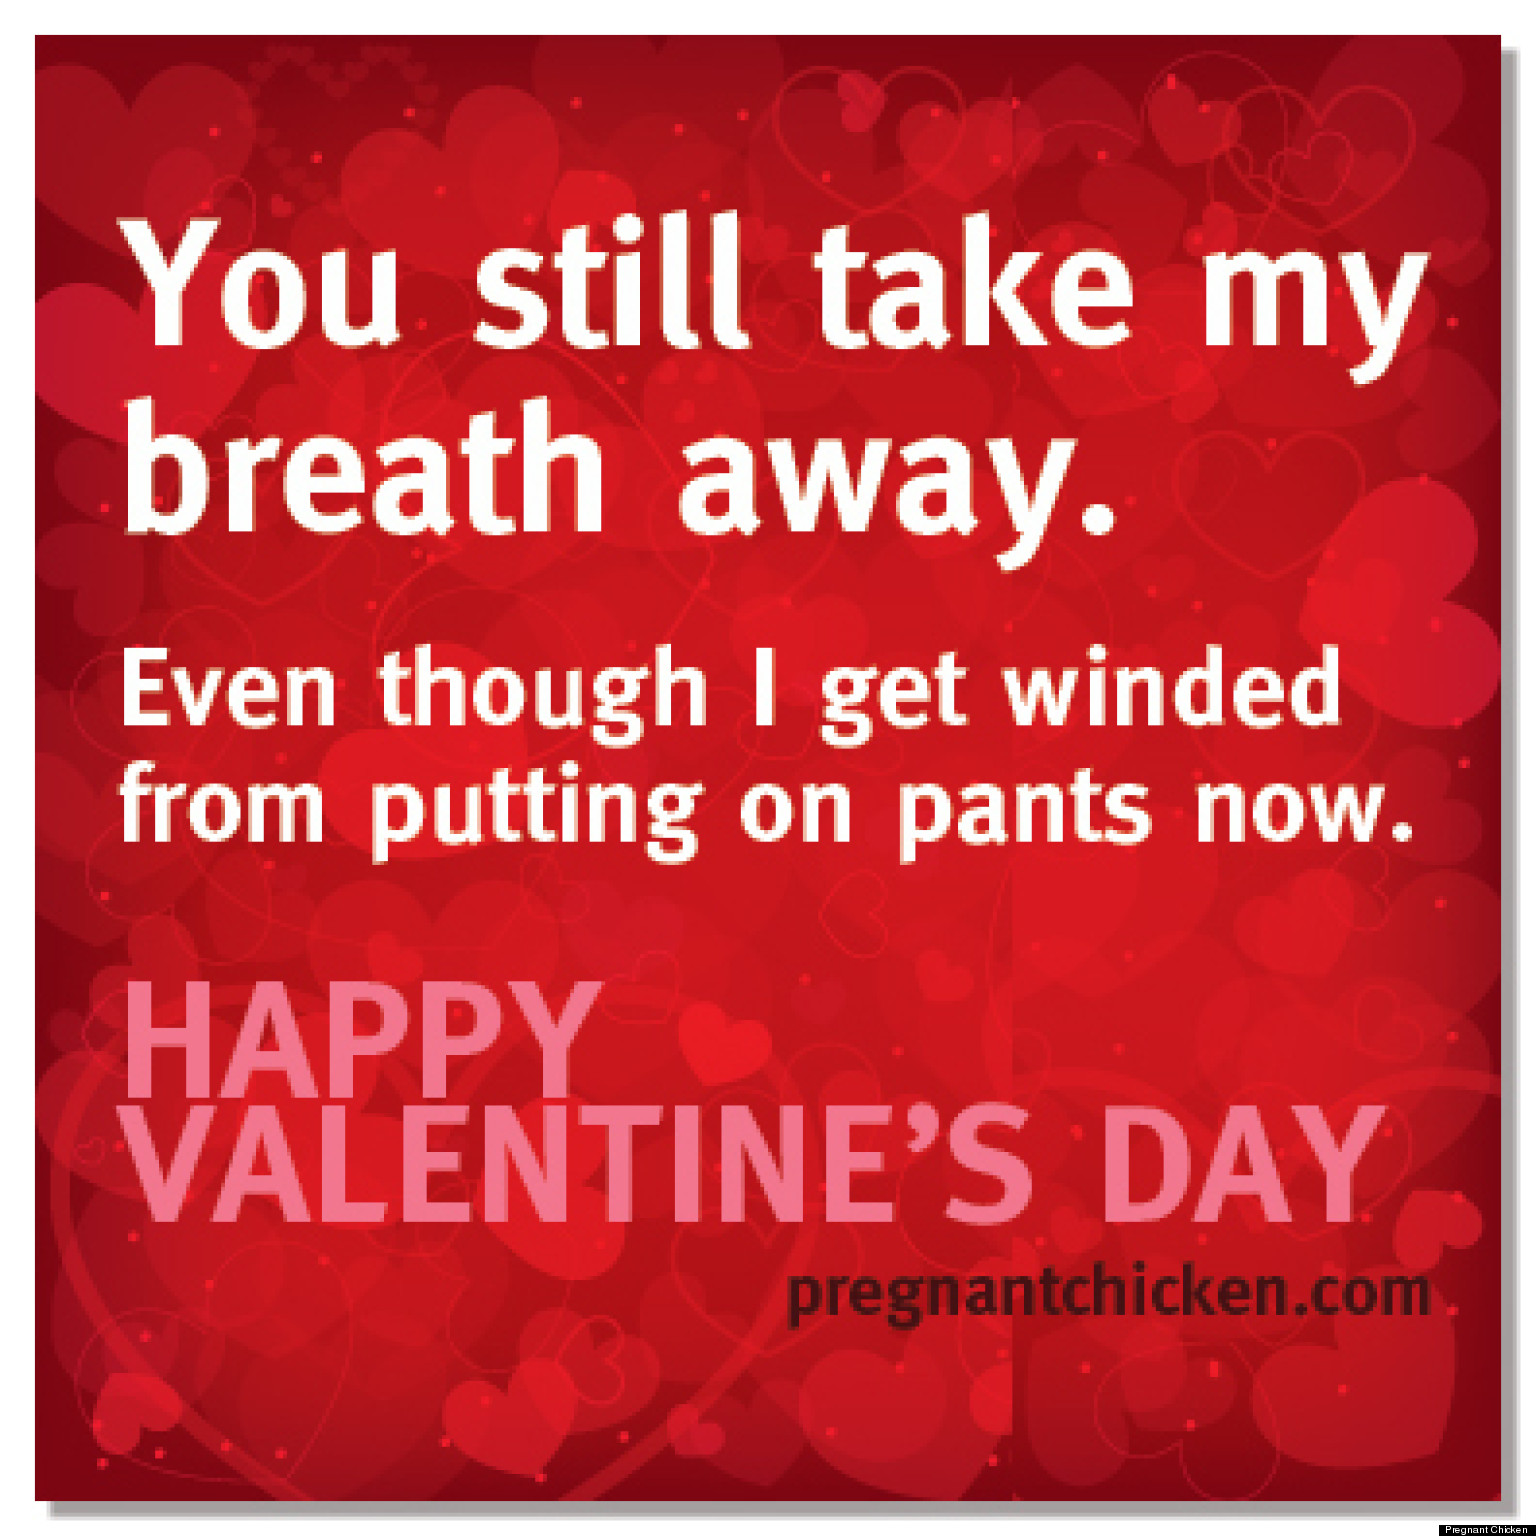 Funny Valentines For Pregnant Women To Give Their Partners PHOTOS